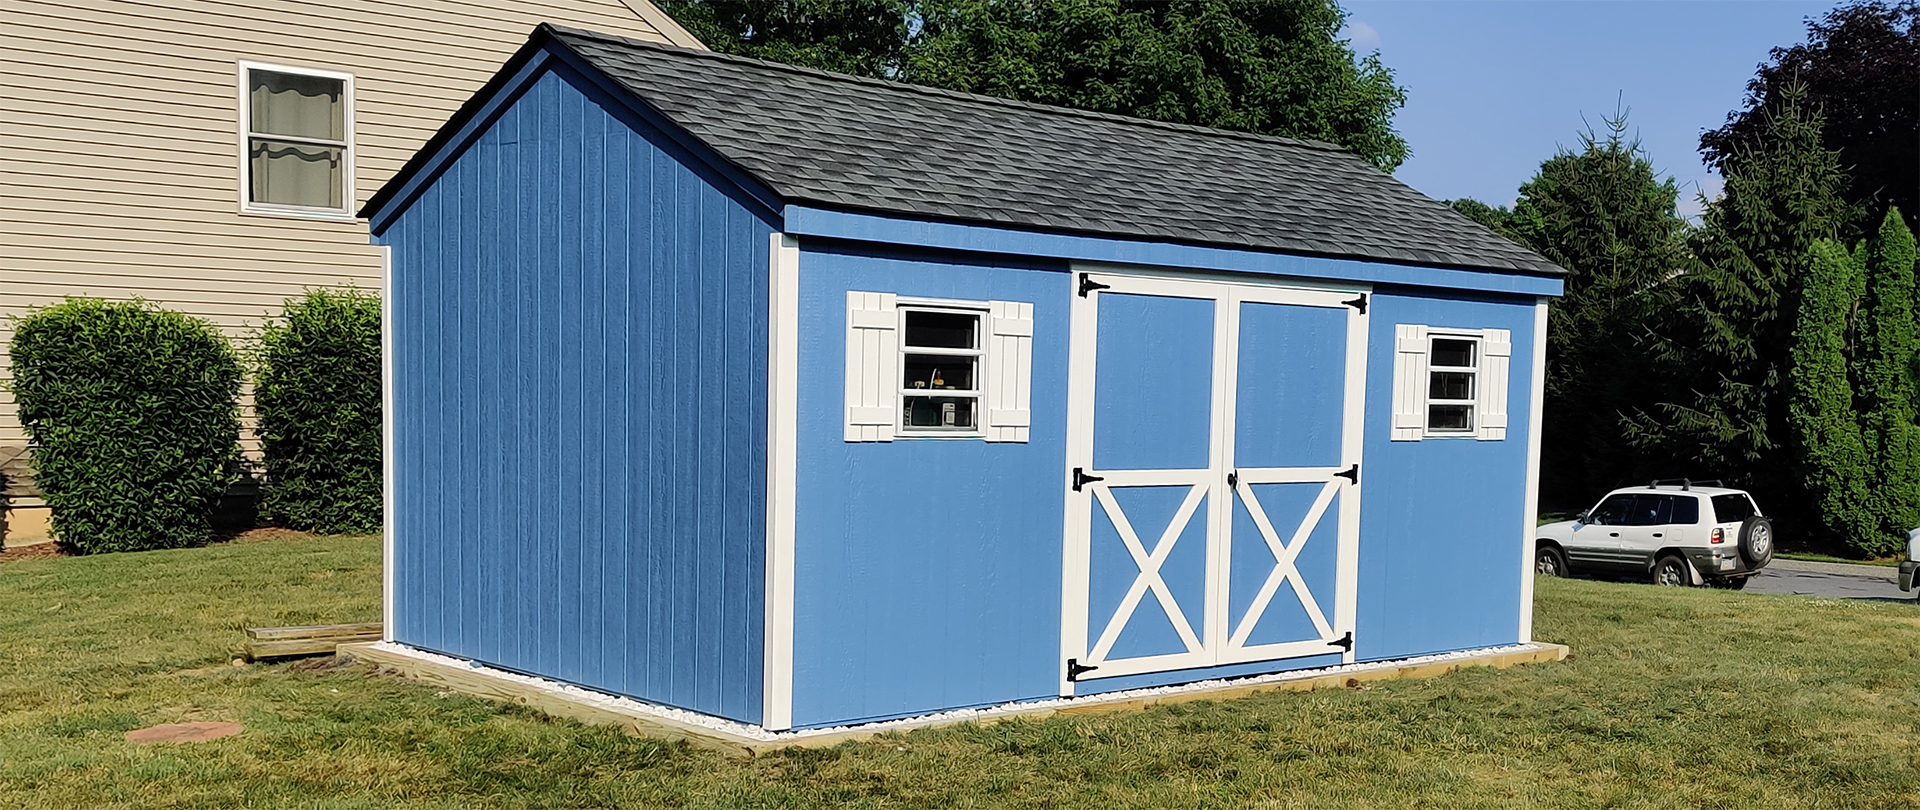 Shed Siding Repaired